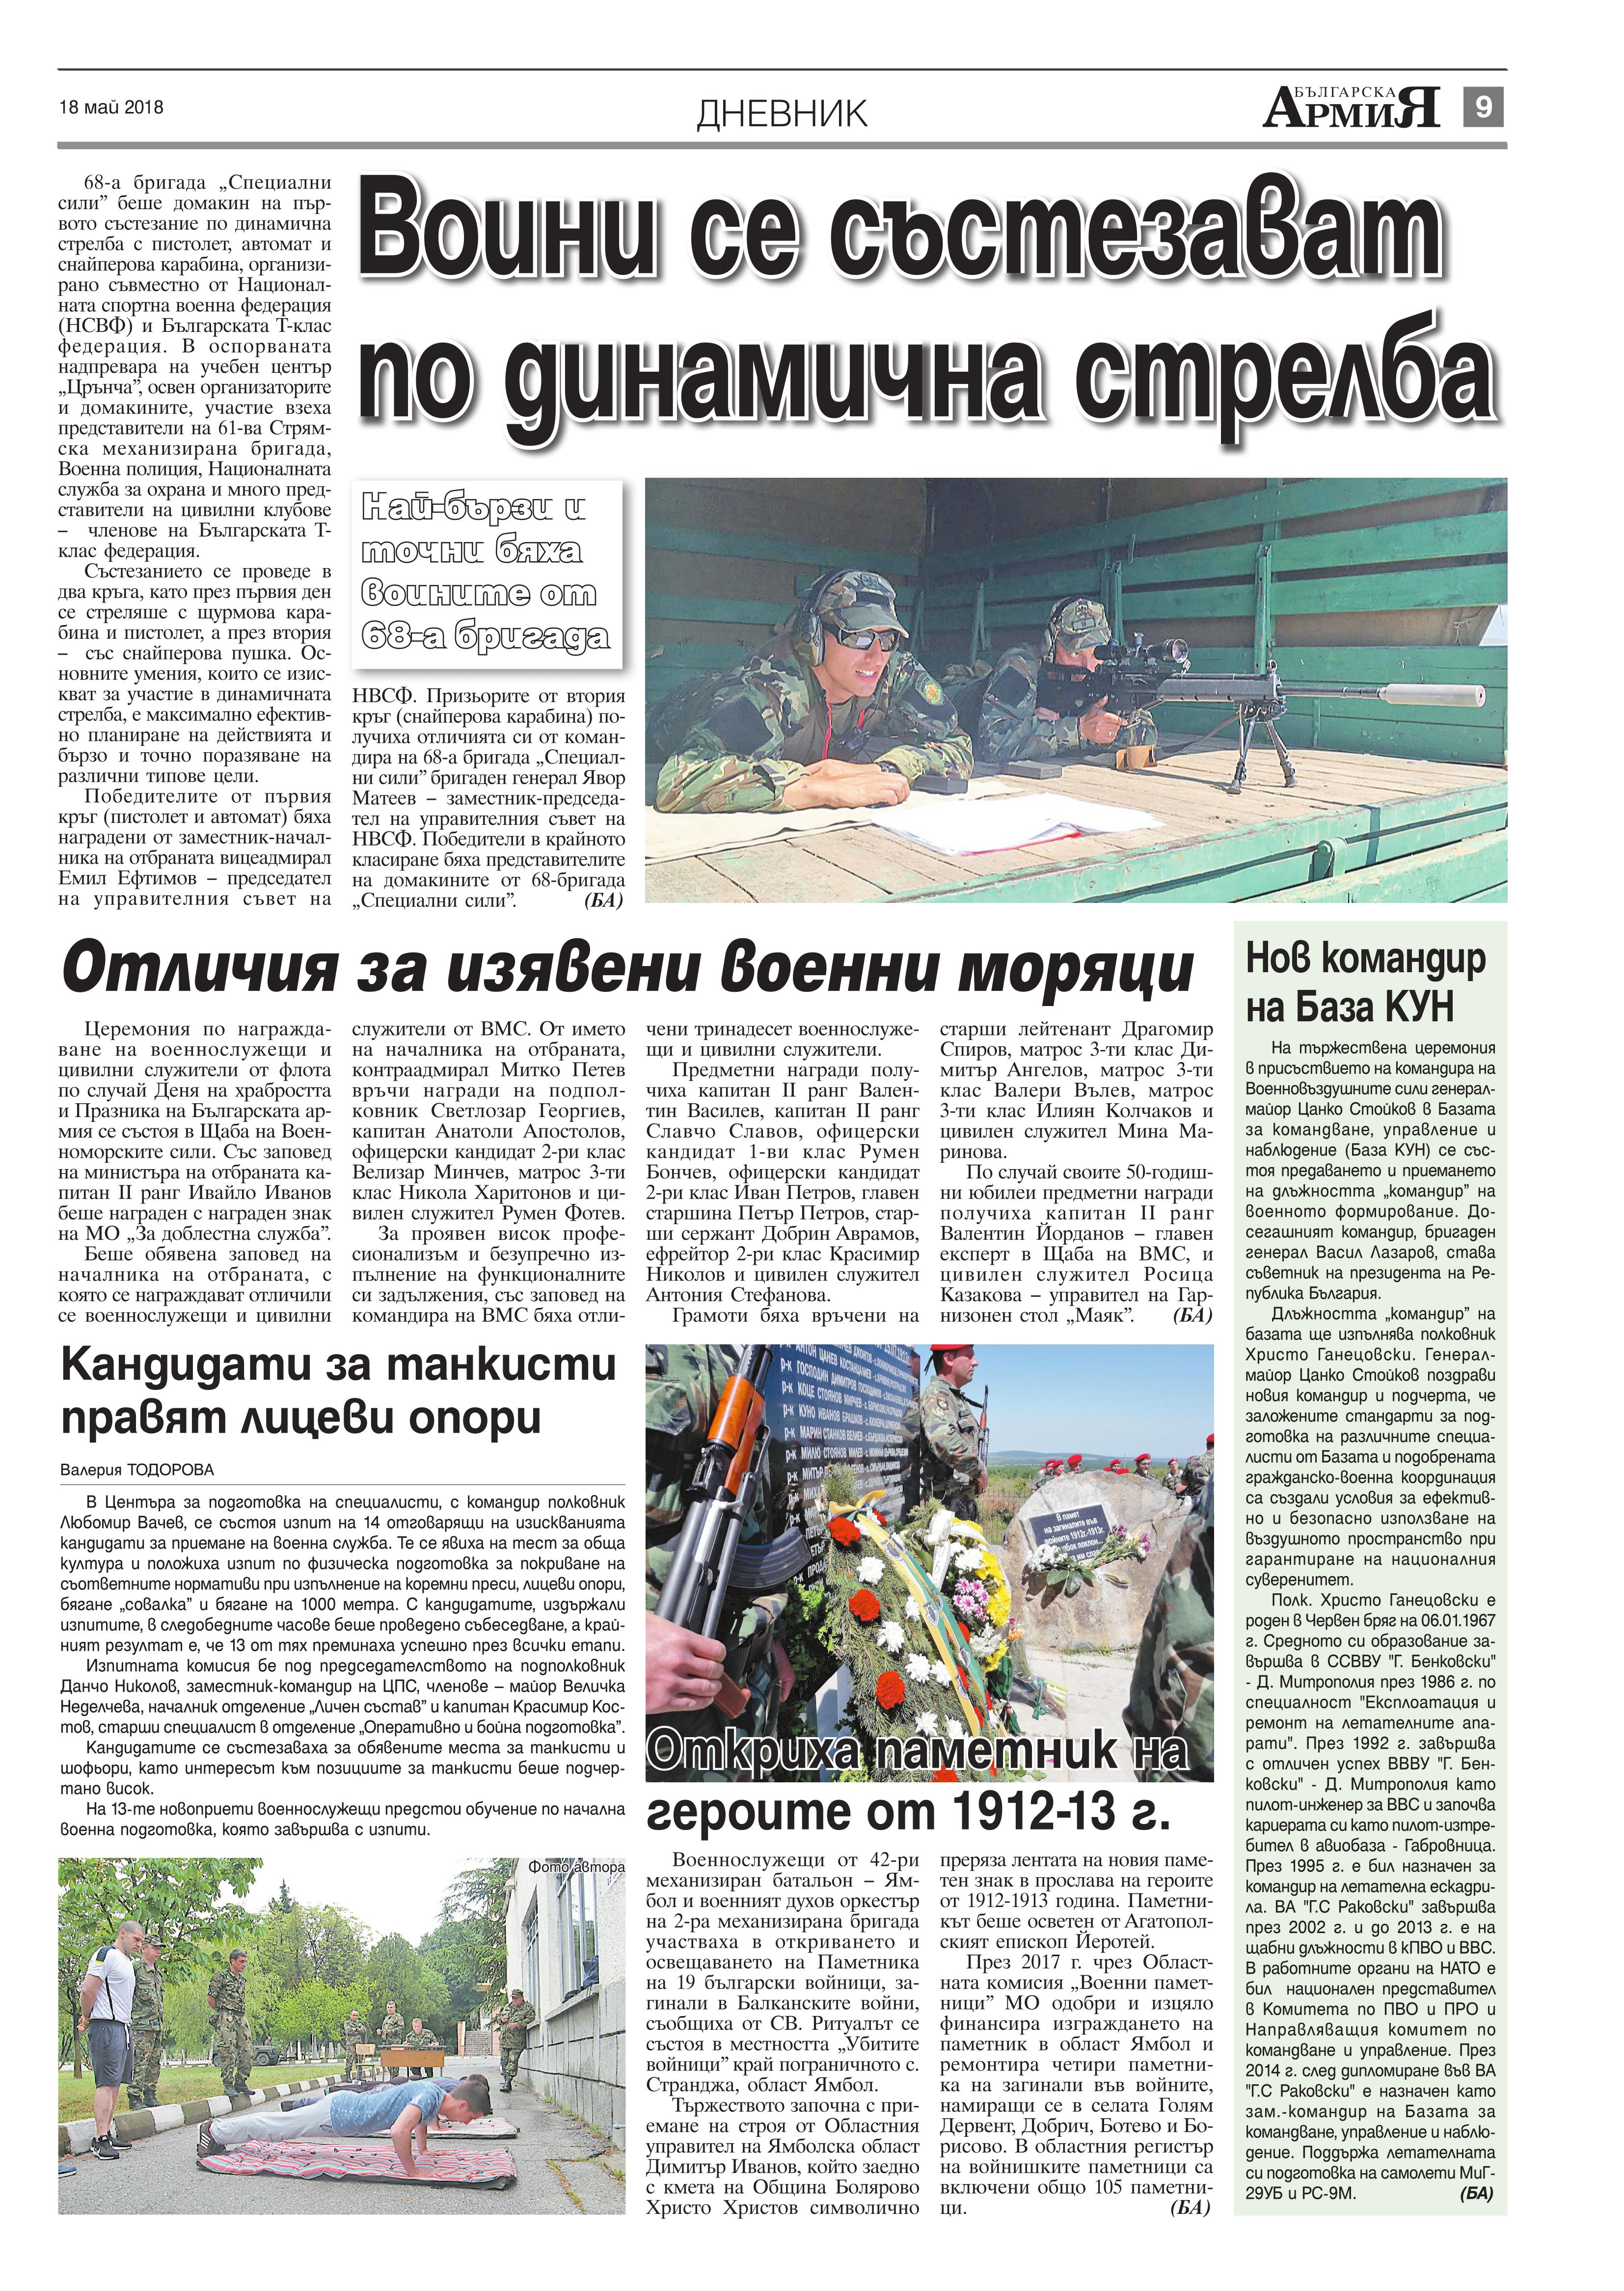 https://armymedia.bg/wp-content/uploads/2015/06/09.page1_-49.jpg